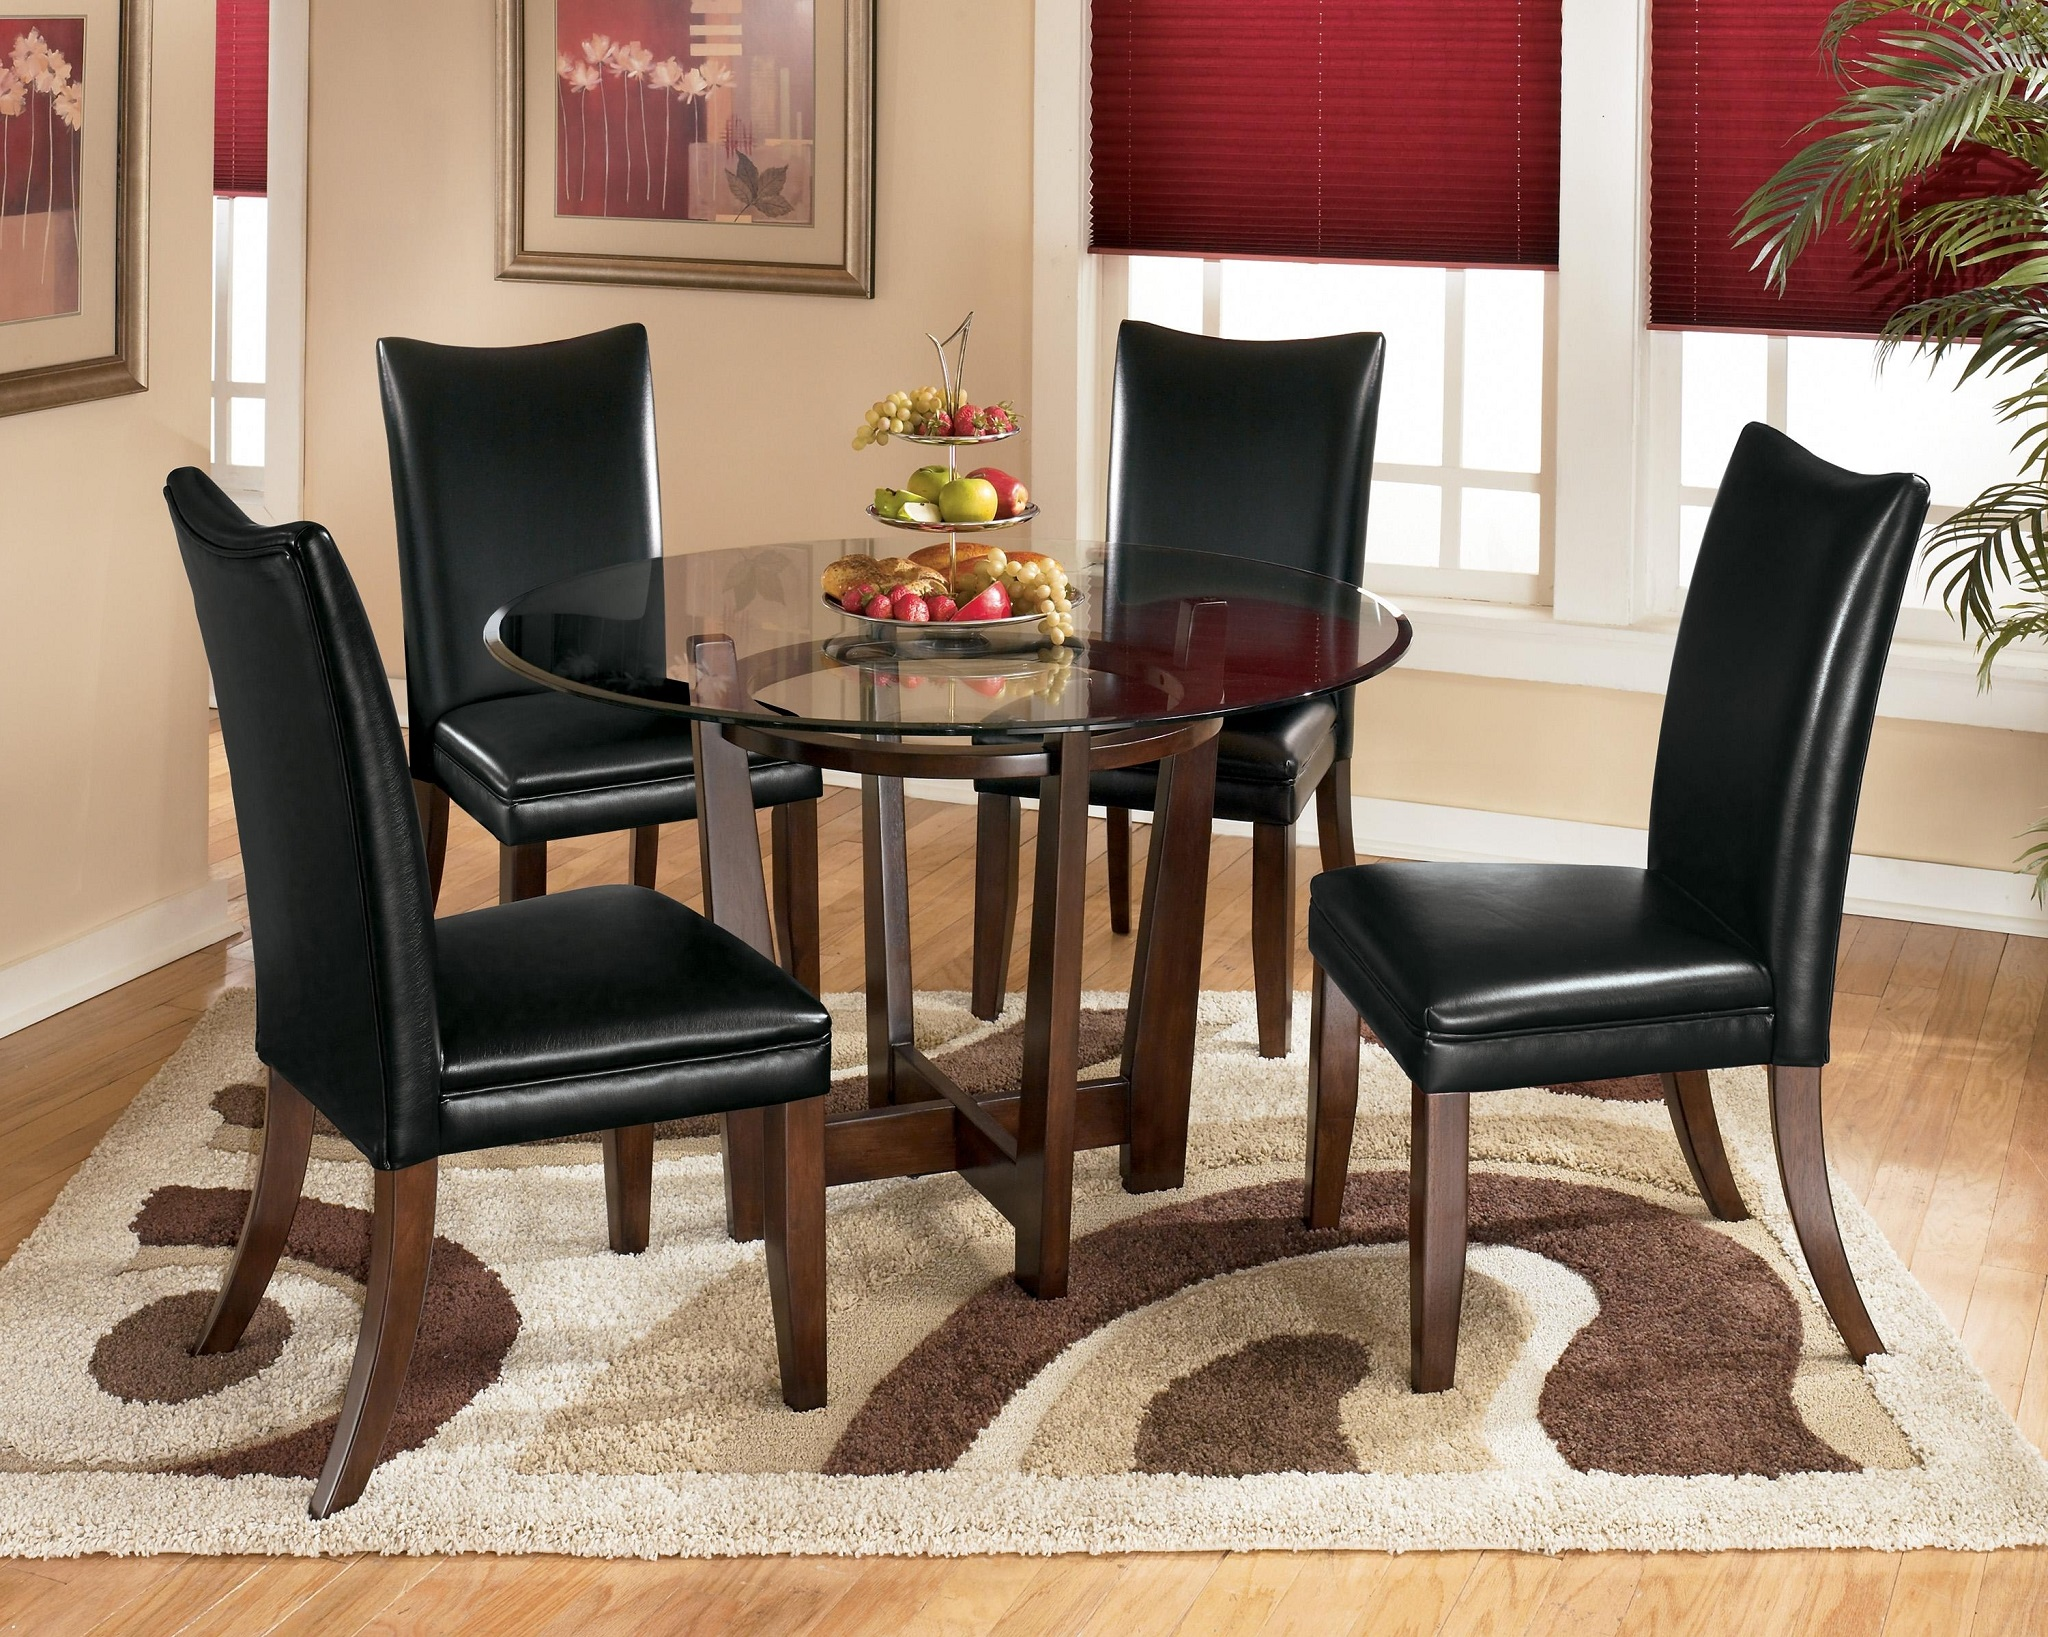 Black Glass Top Dining Room Round Table (Image 2 of 6)